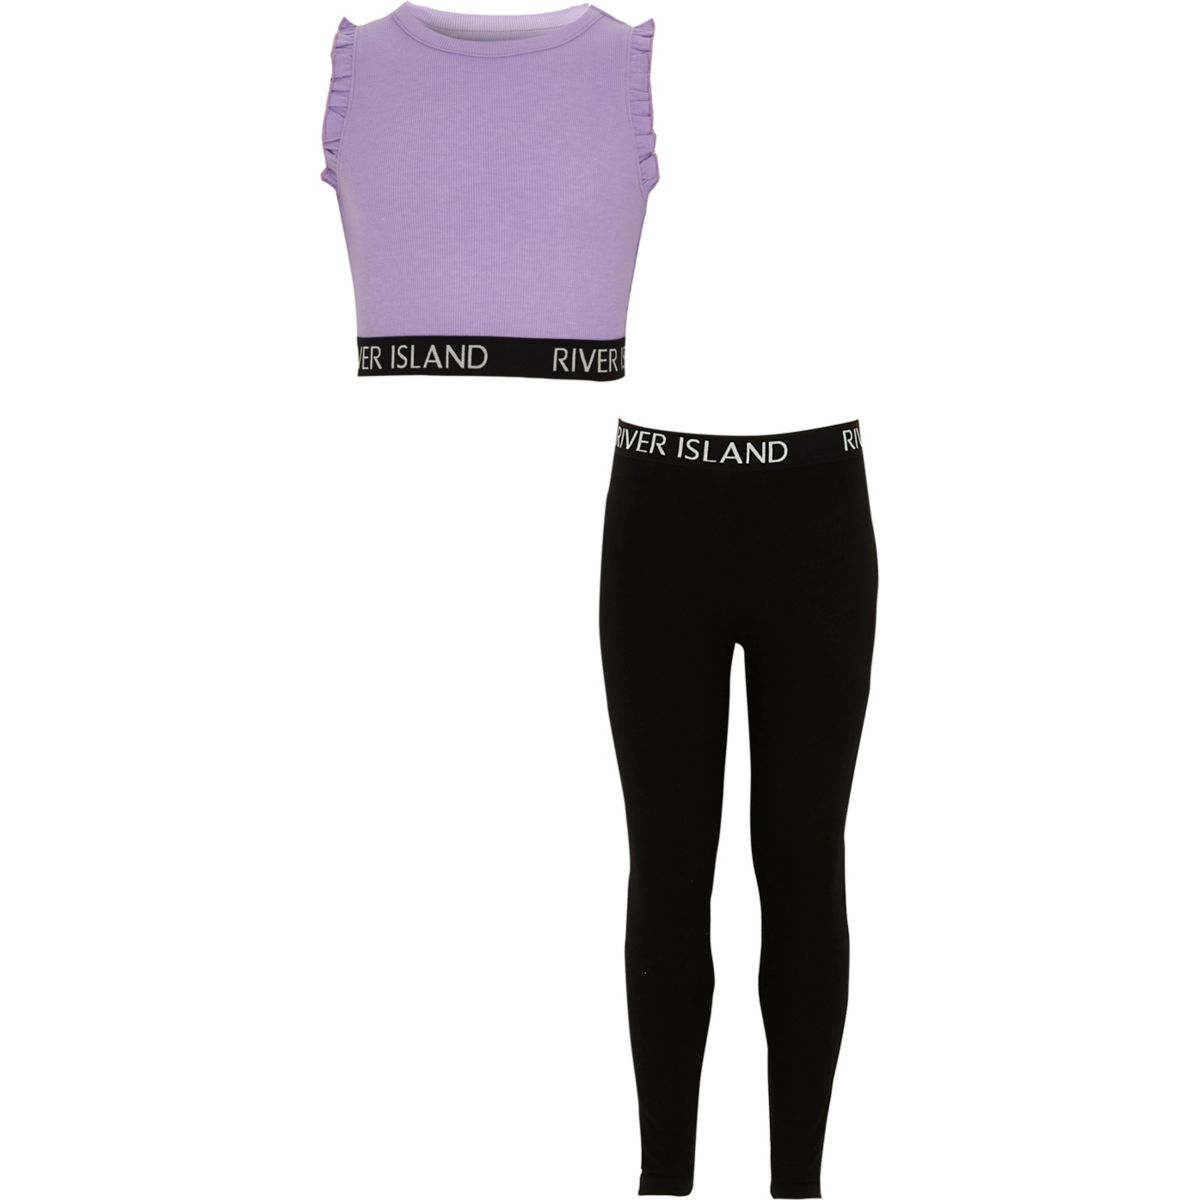 RI – Ensemble legging et crop top violet pour fille